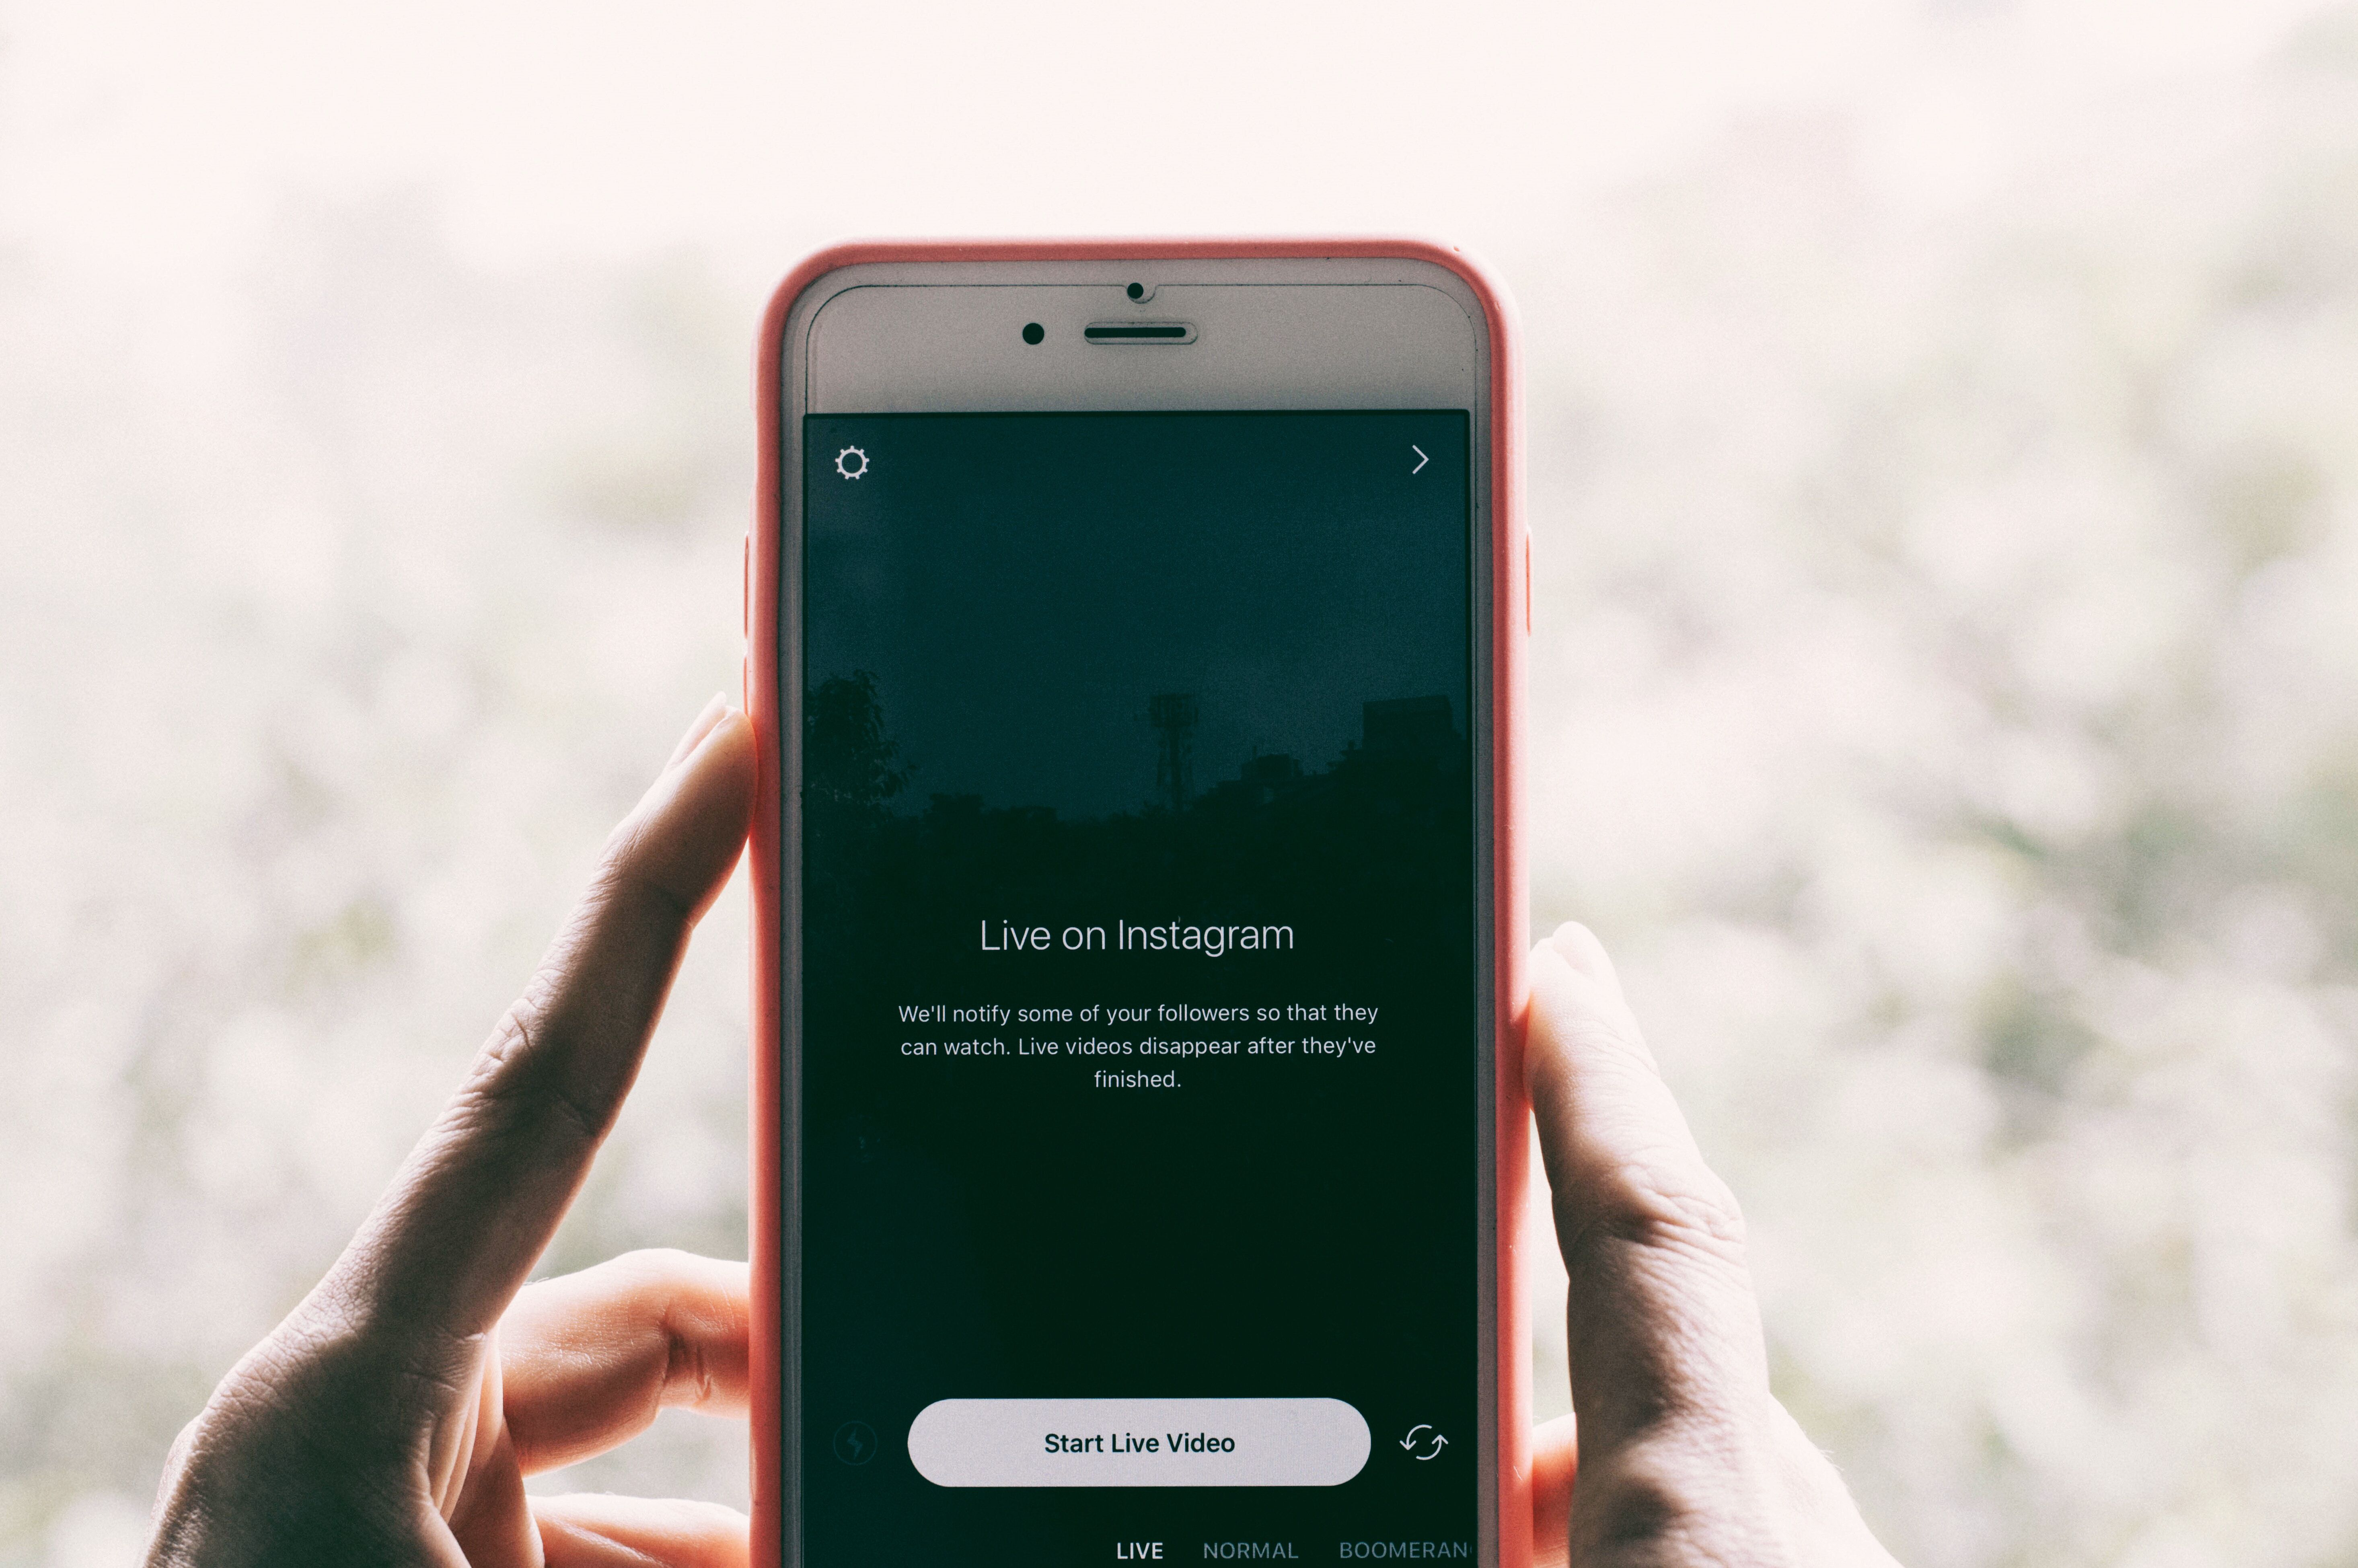 An image of a person holding up a smartphone and getting ready to go live on Instagram.